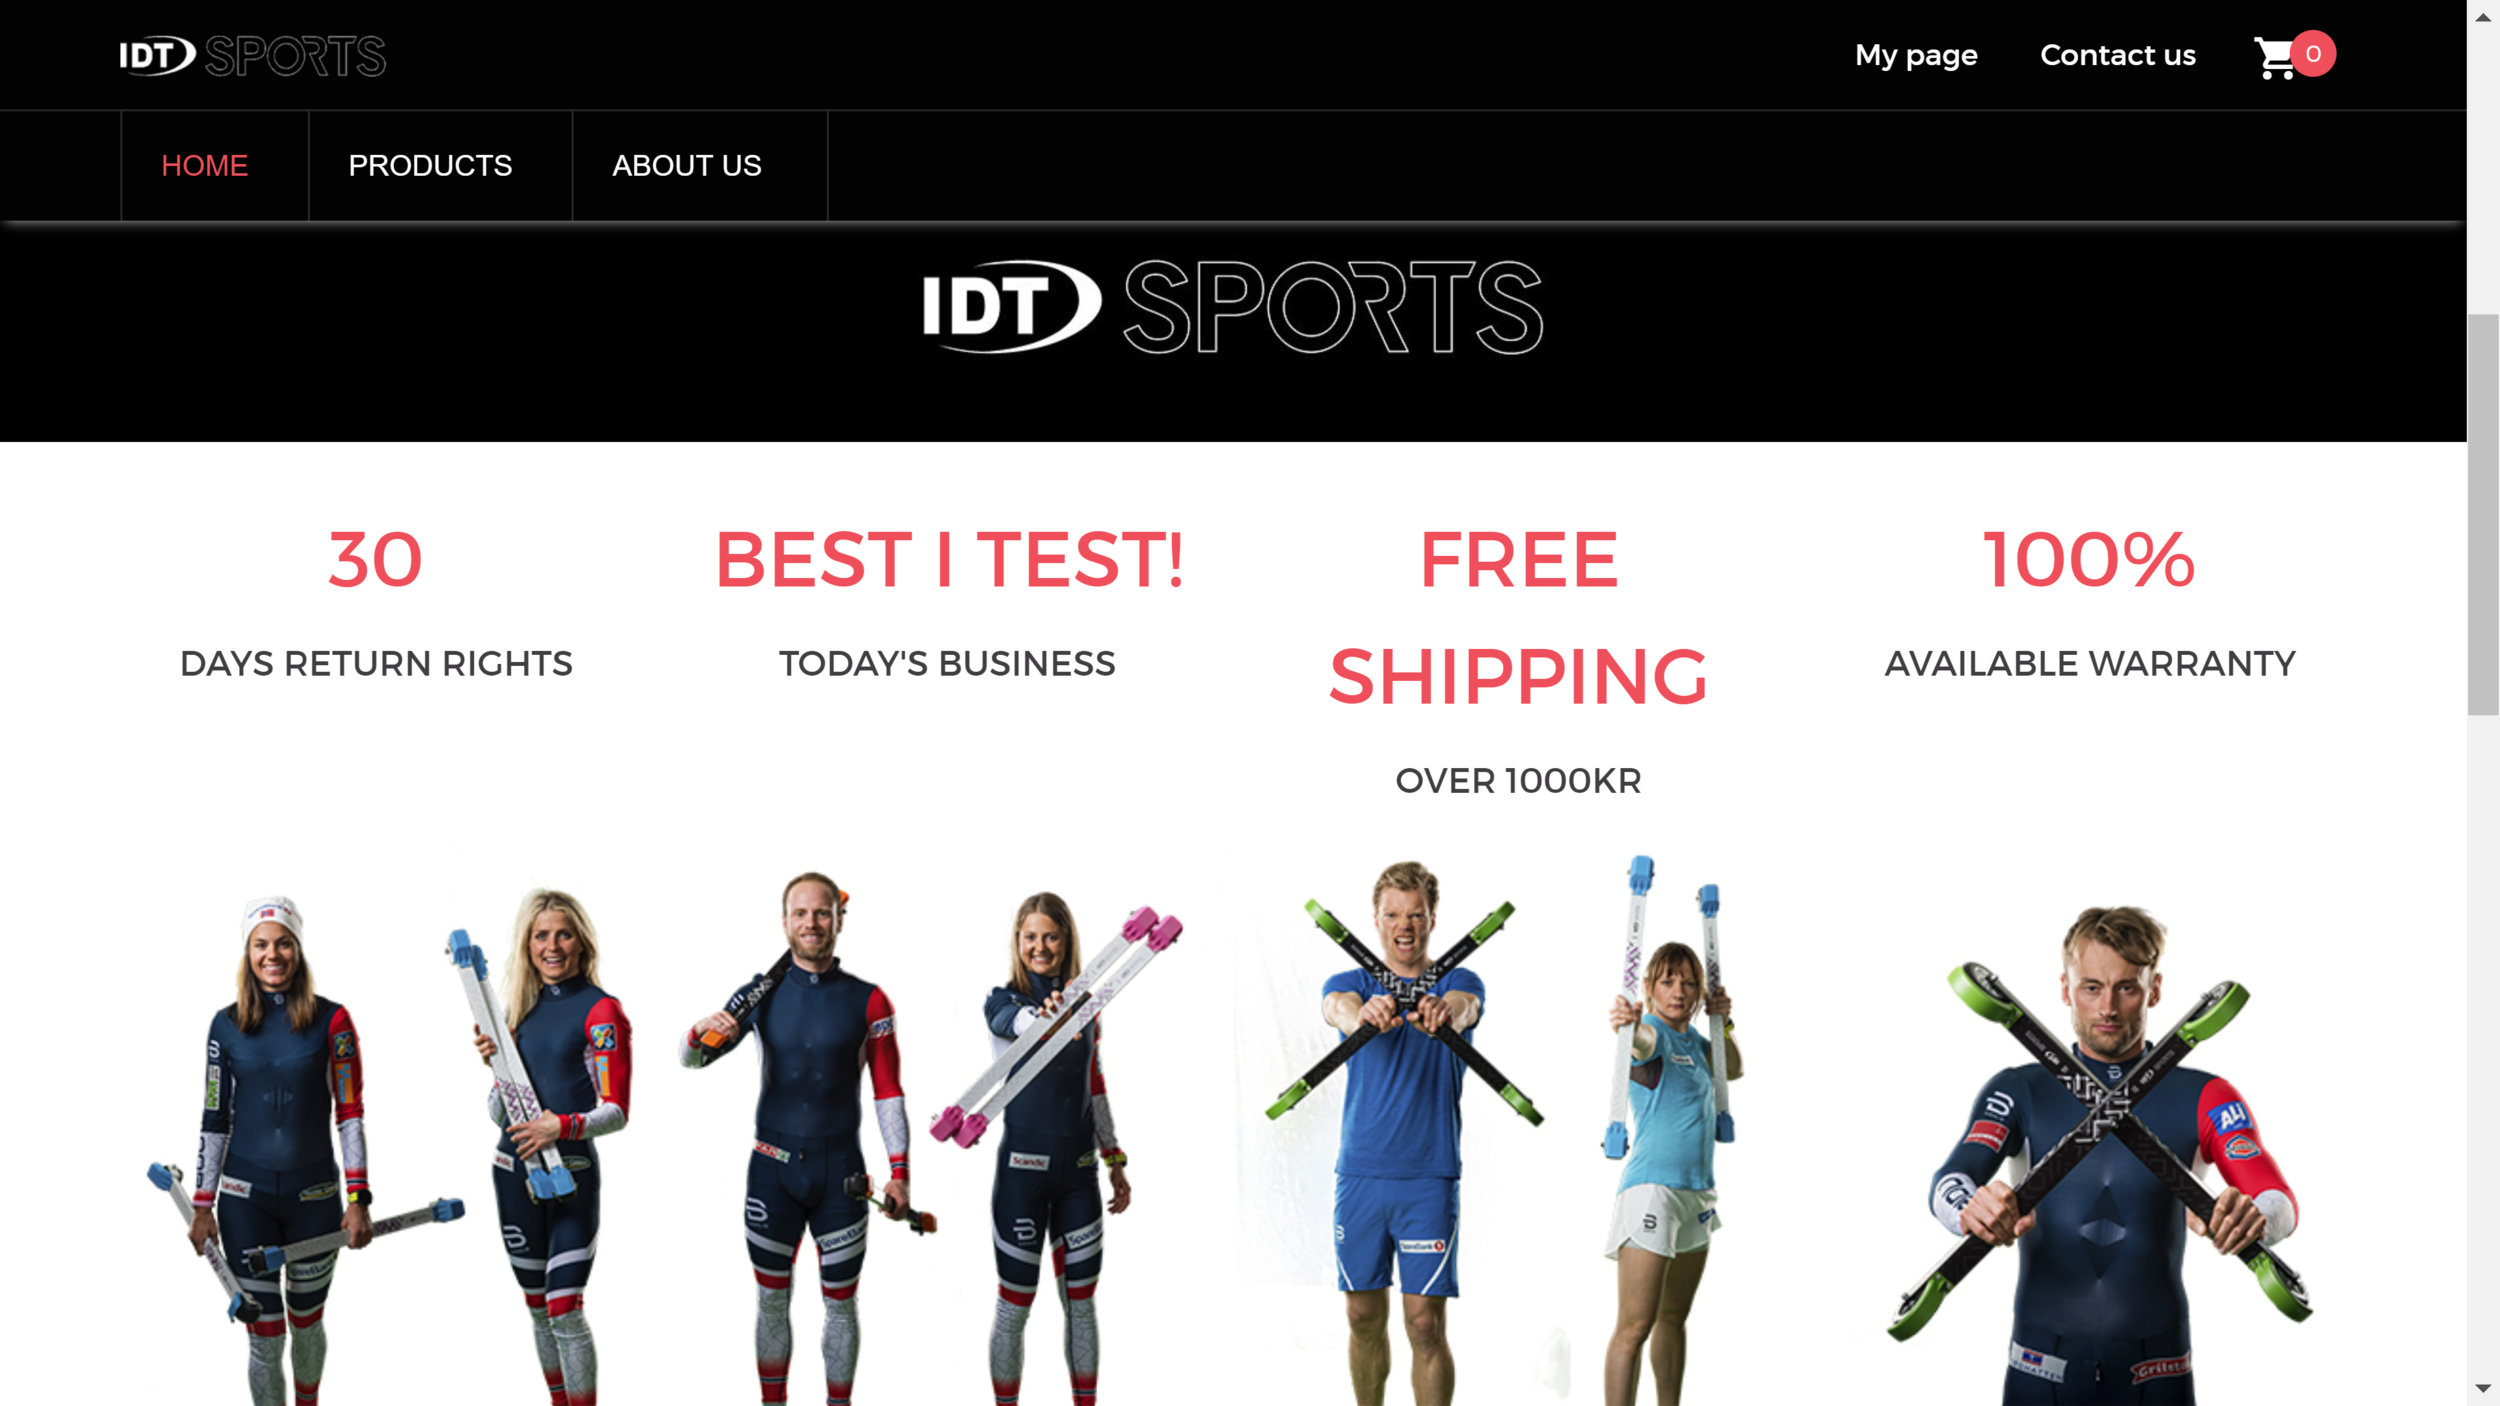 2018-12-28_IDT_Sports.png